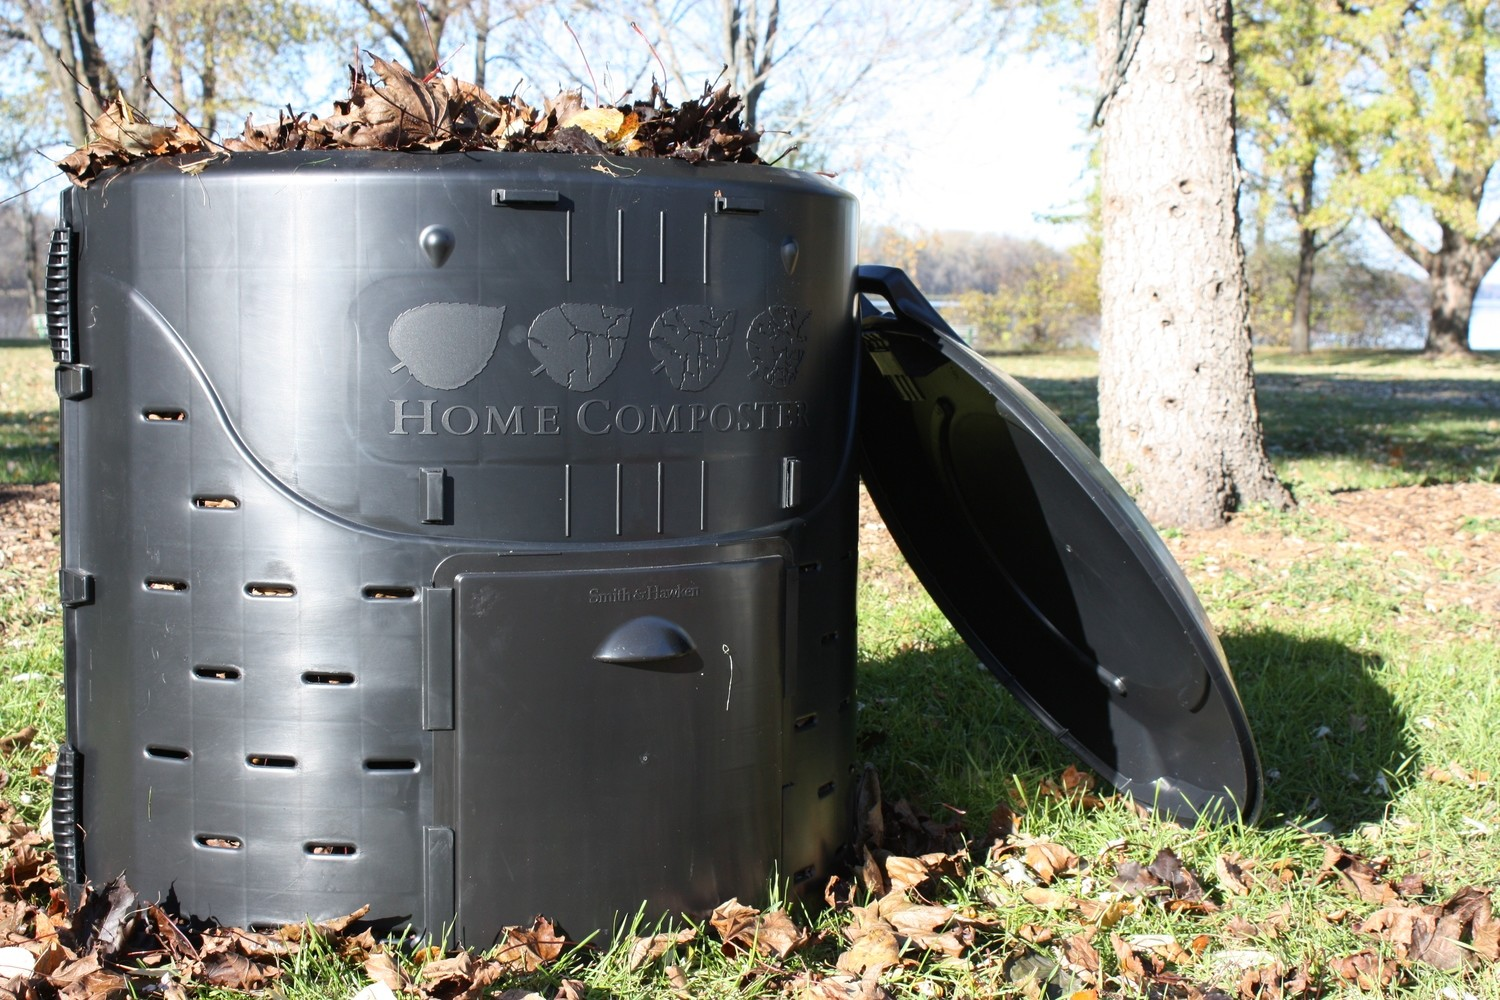 Carver County Home Composter